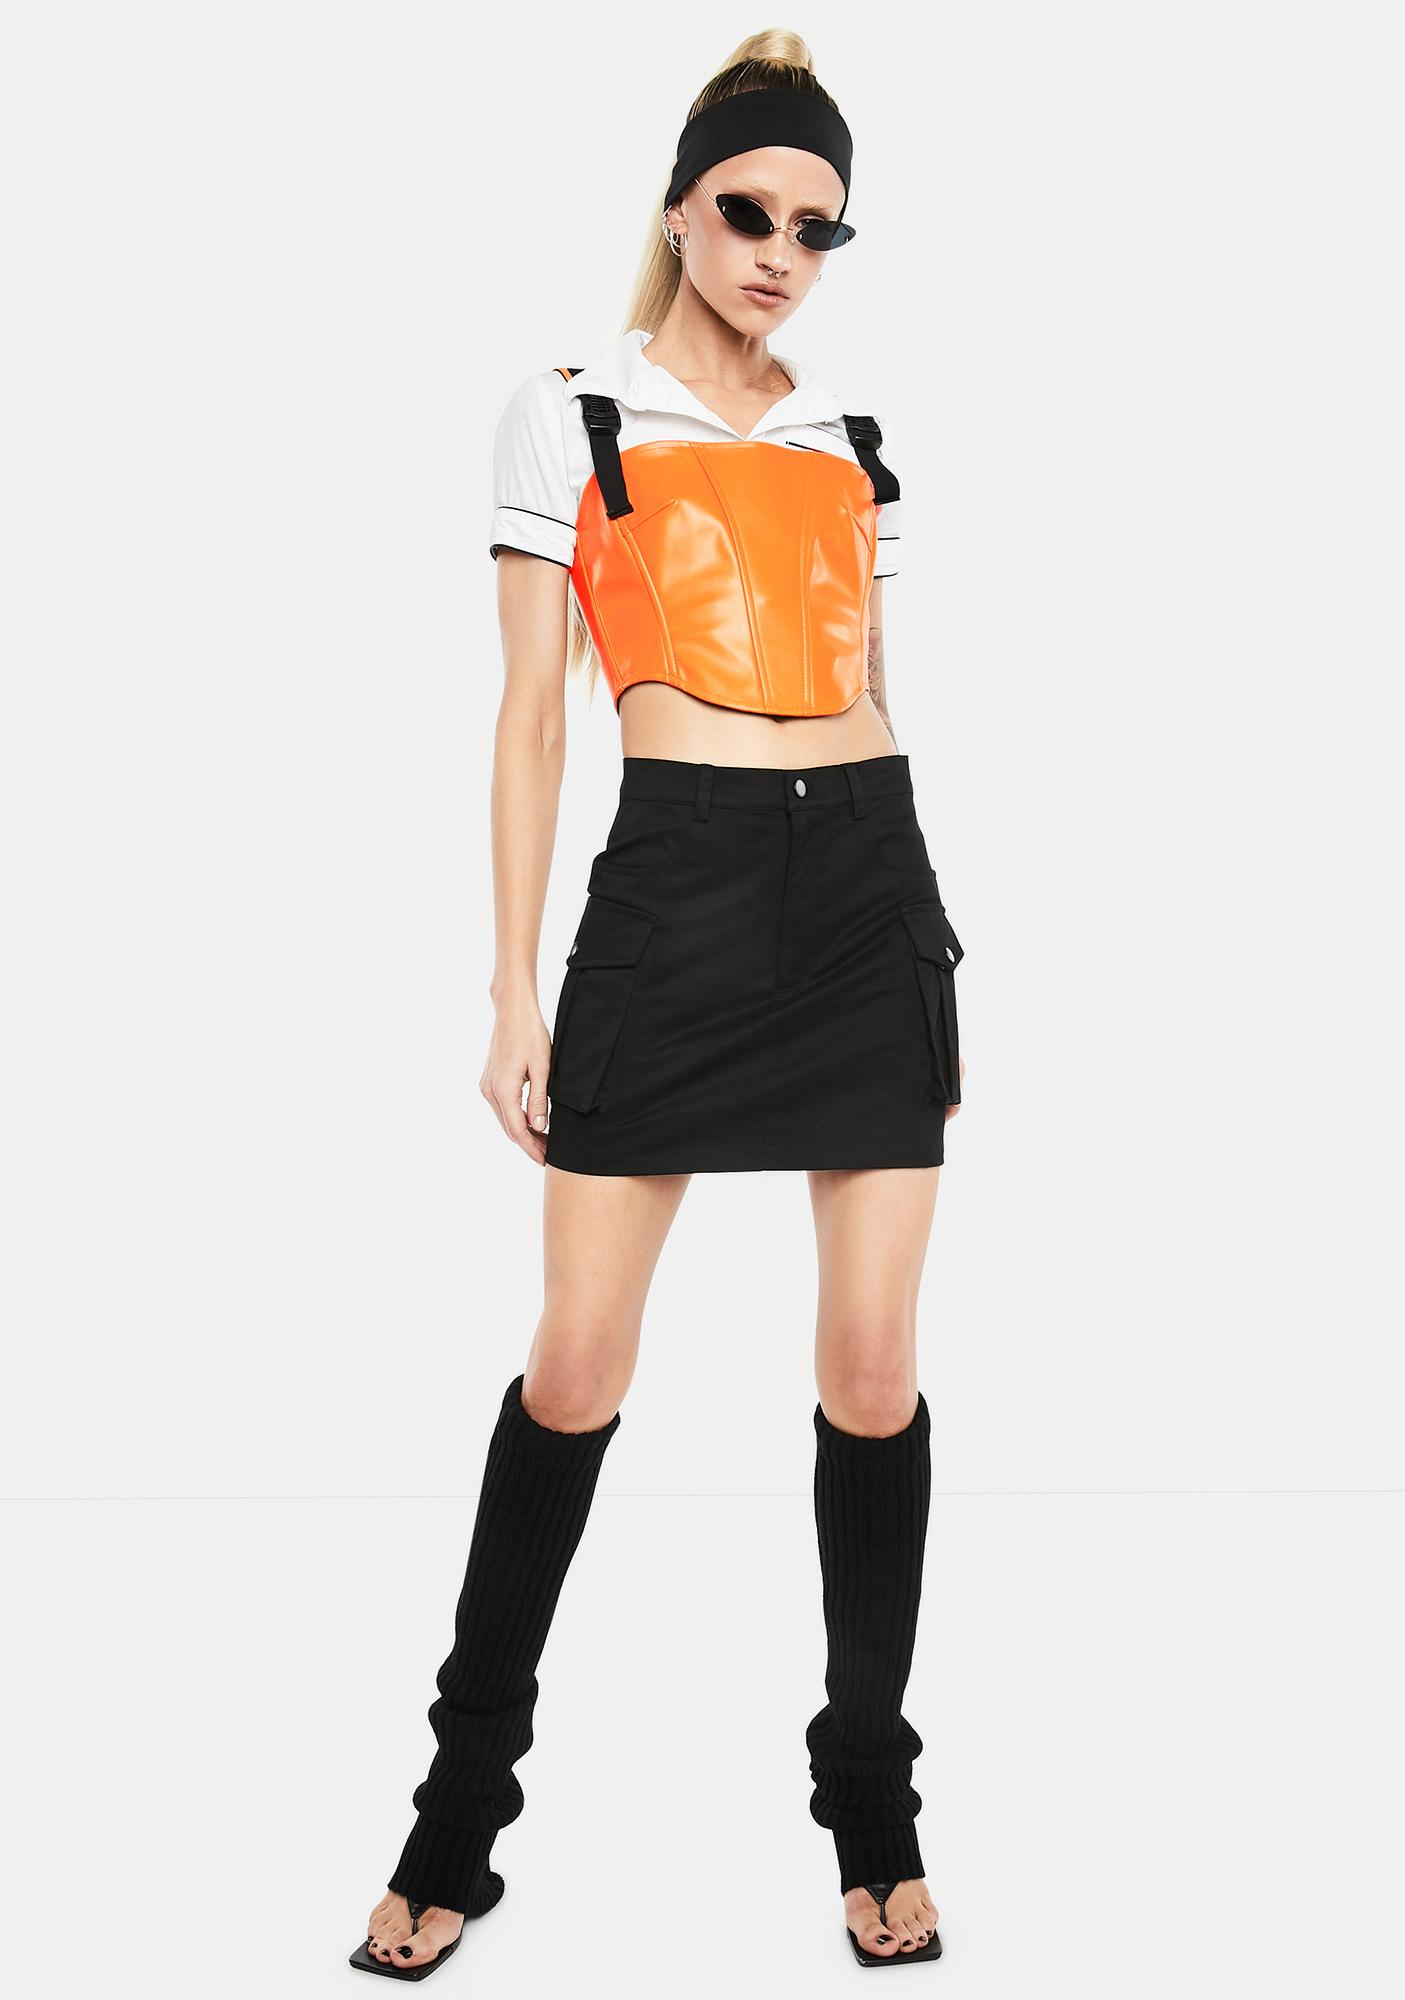 Club Exx Bring The Energy Corset Top